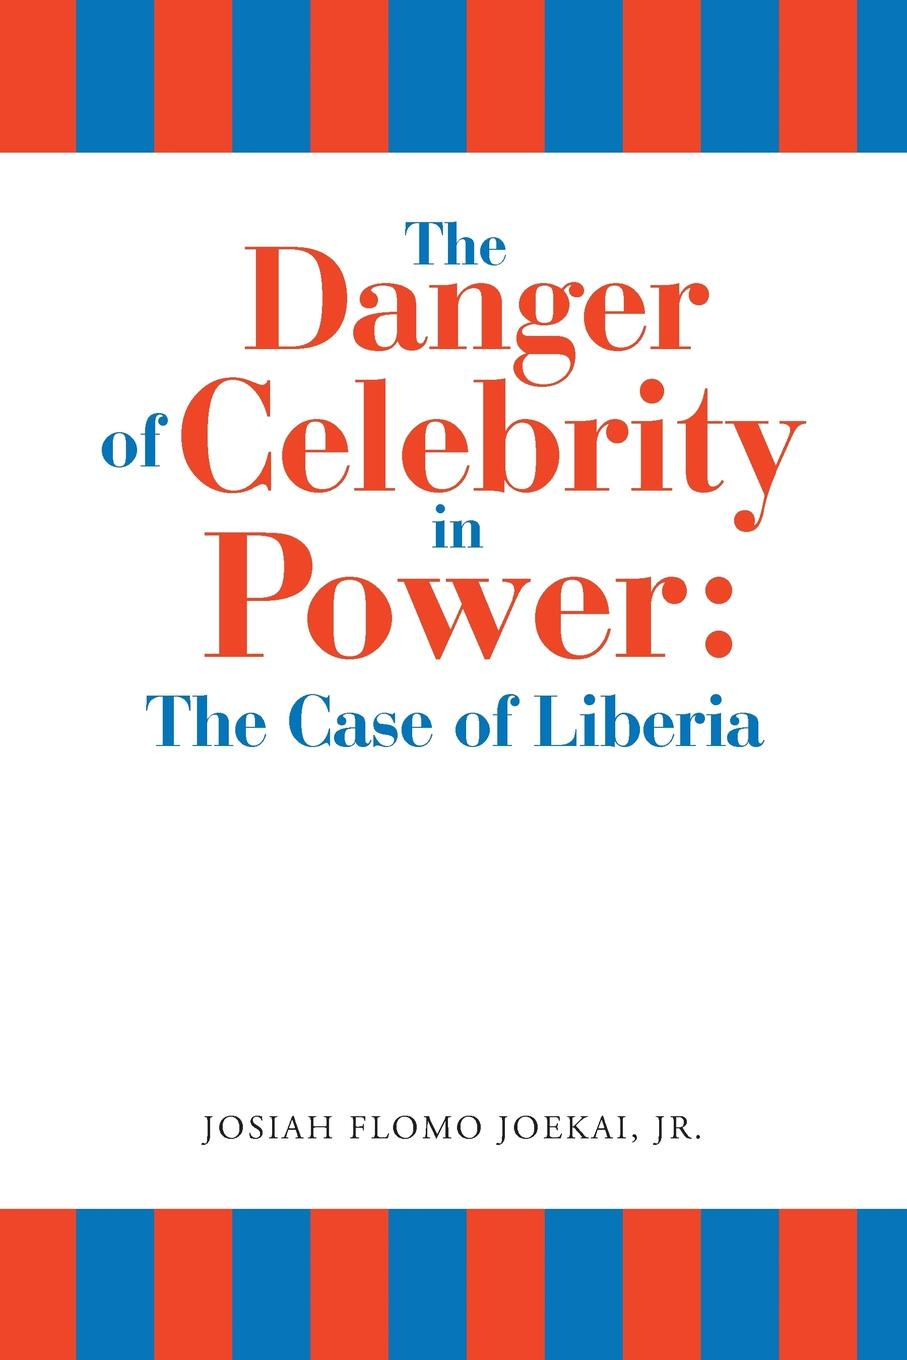 The Danger of Celebrity in Power. the Case of Liberia